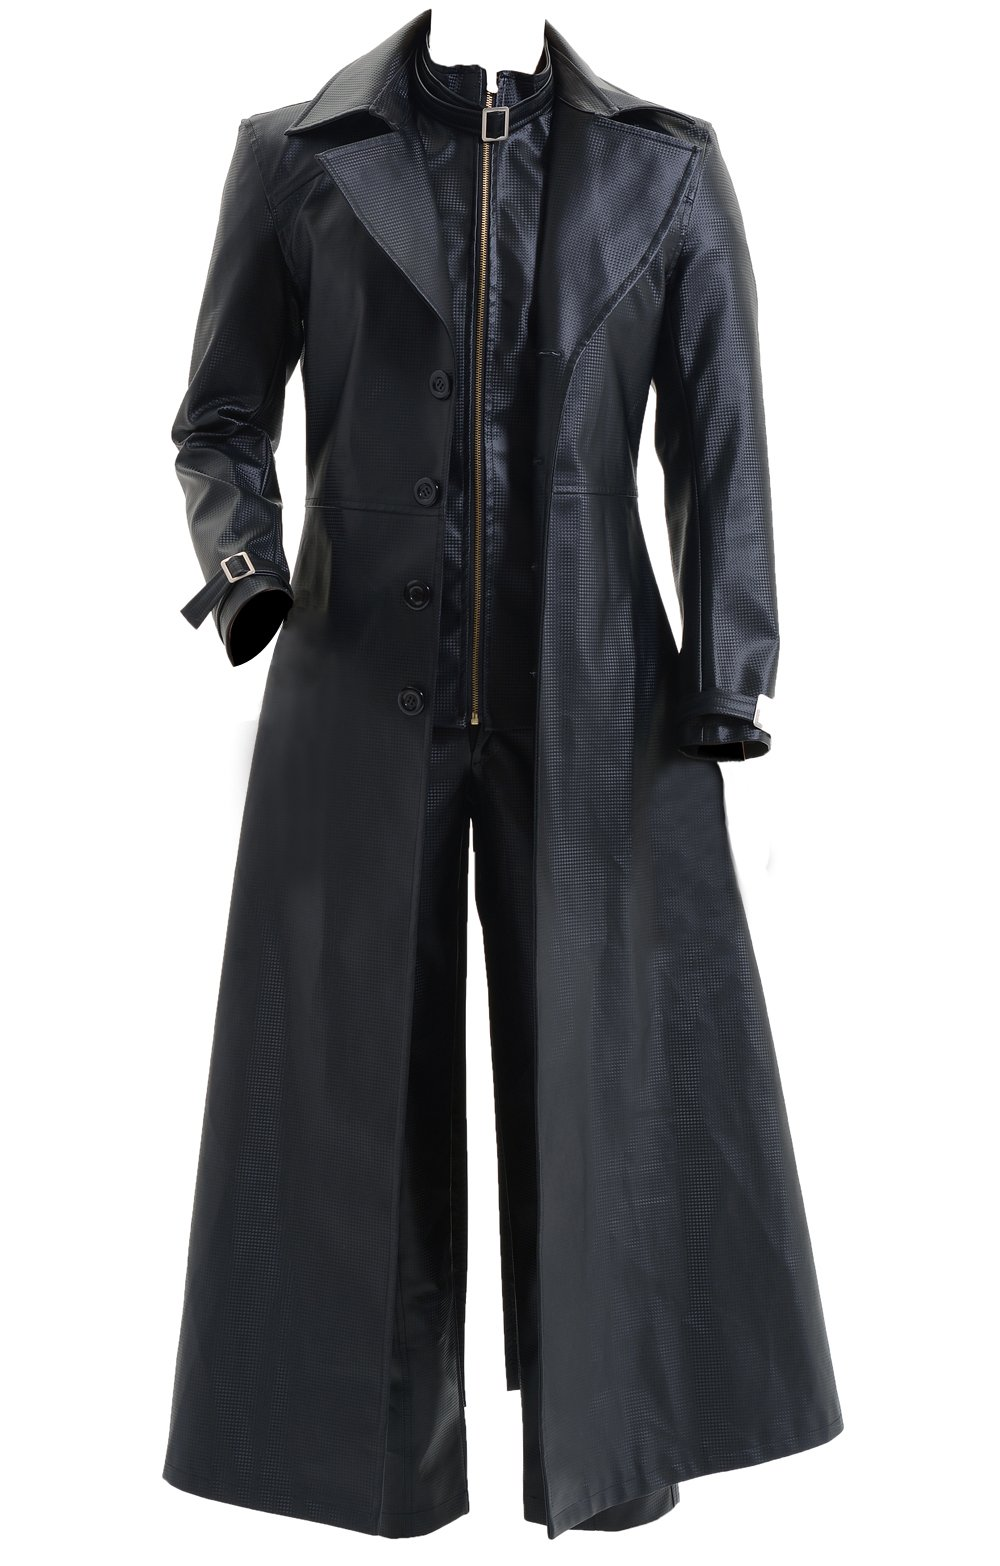 CosDaddy® Cosplay Costume Albert Wesker Black Coat Jacket,Men-Large by CosDaddy